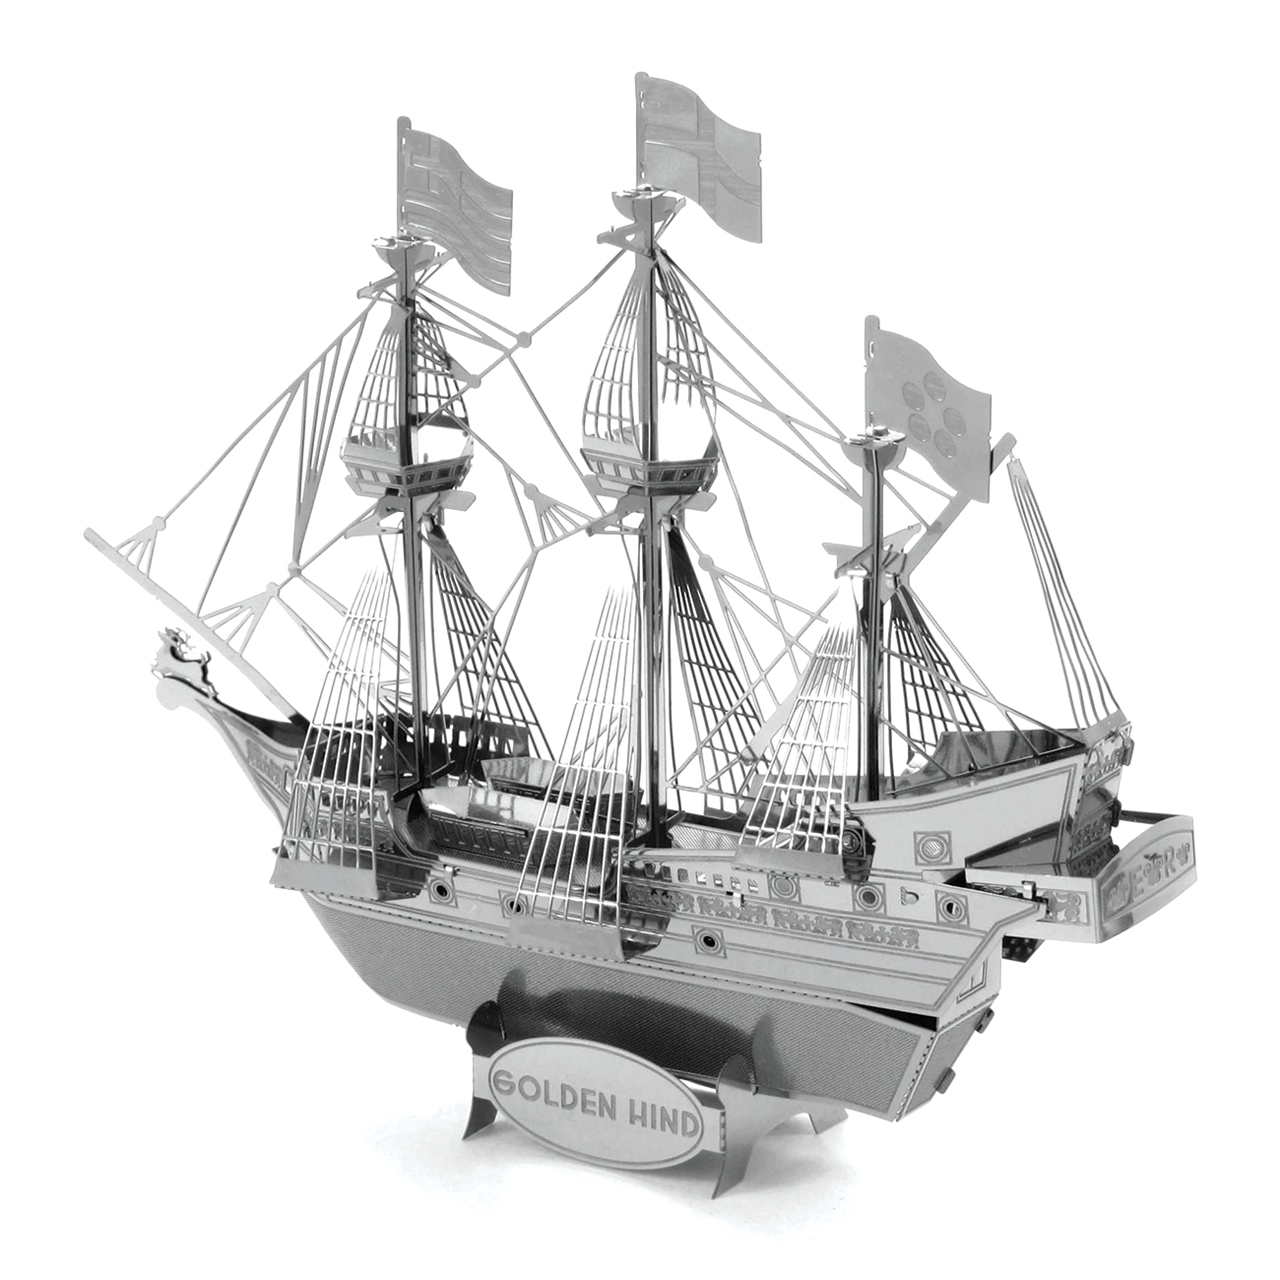 Golden Hind Galleon Ship Metal Earth 3D Metal Model DIY GOLDEN Edition 2 Sheets